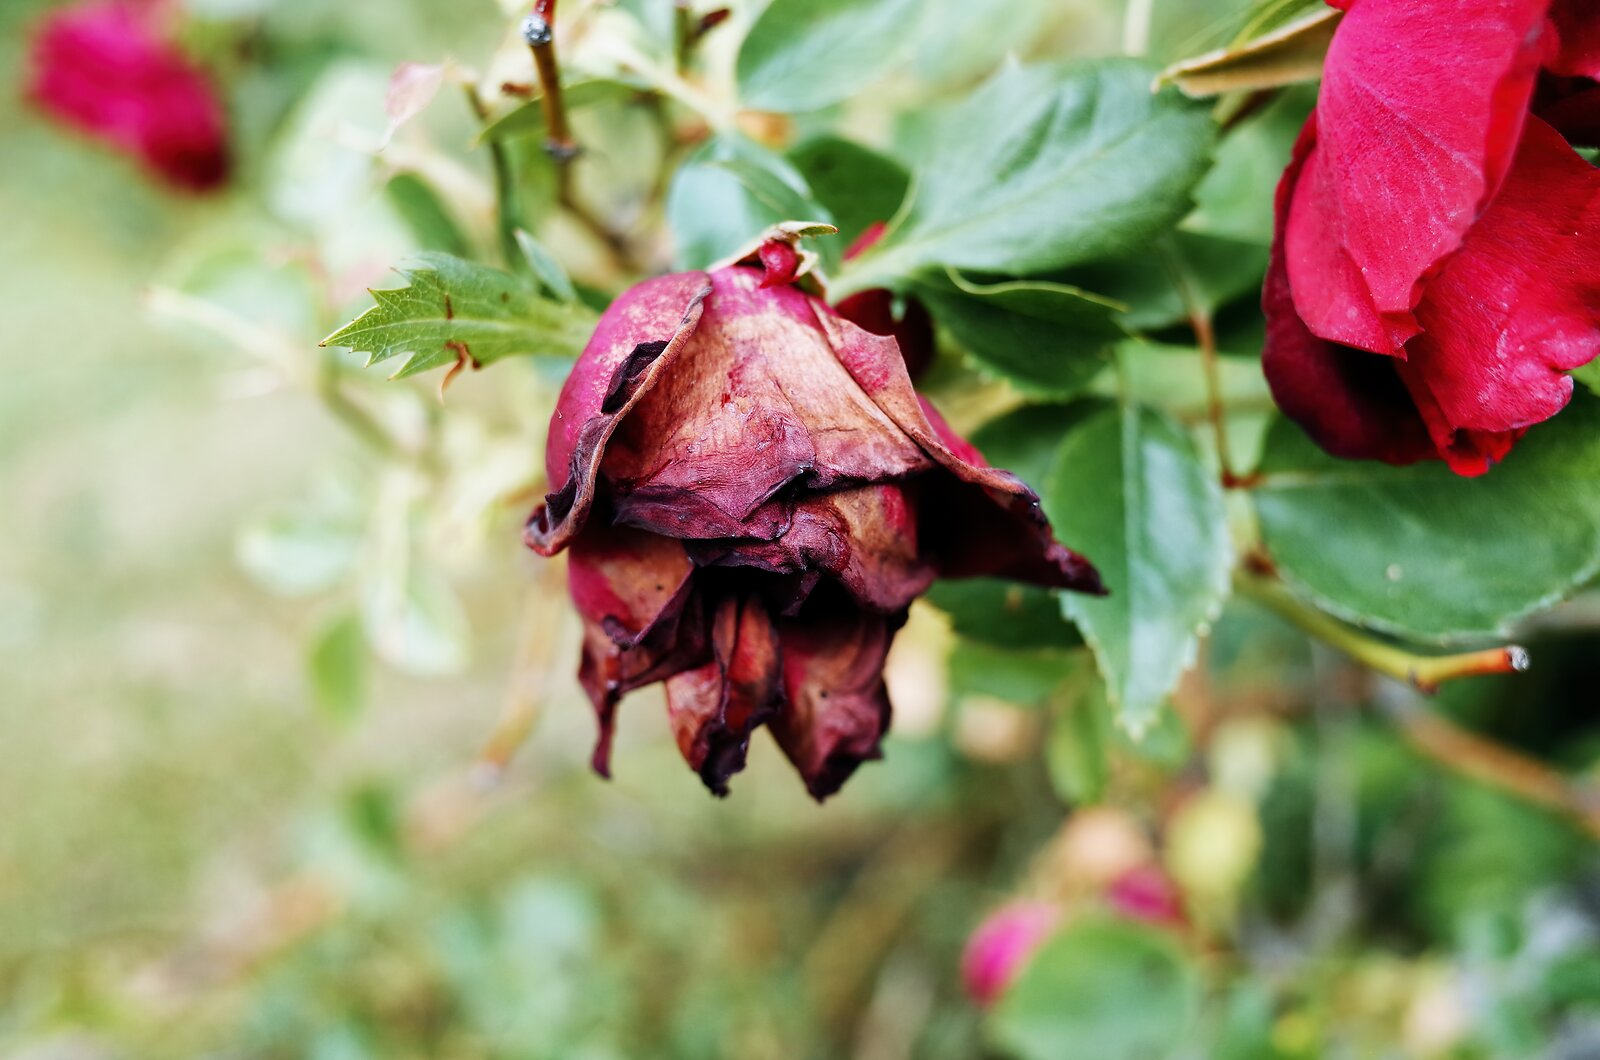 GRII_May18_Dying_rose(PosFilm).jpg